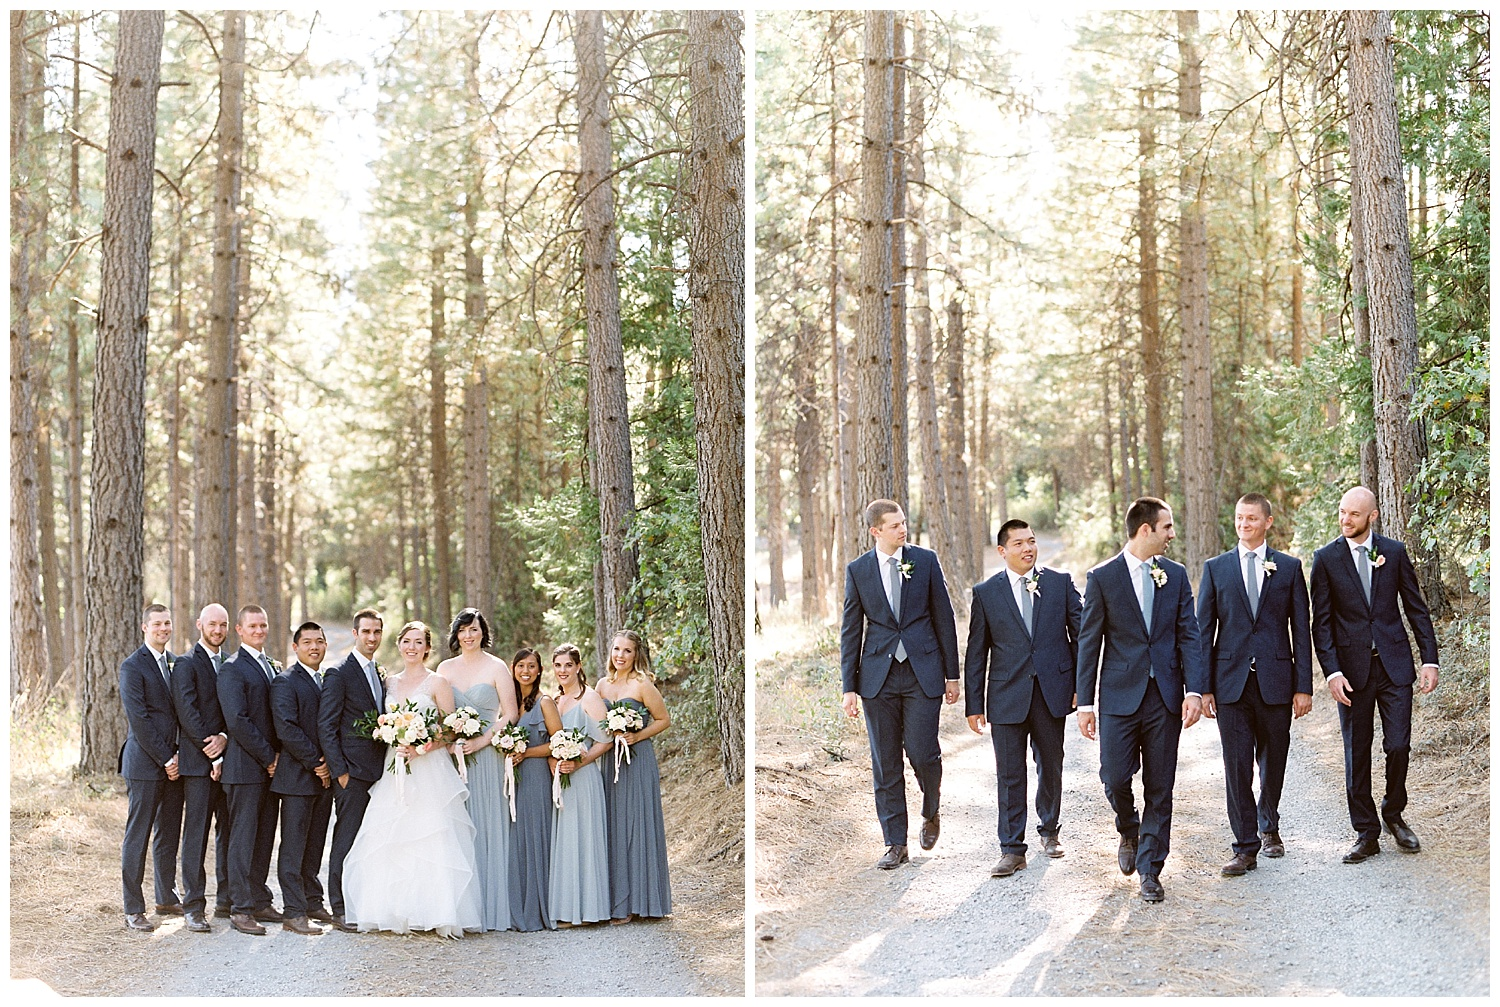 Forest-house-lodge-wedding-foresthill-california-17.jpg